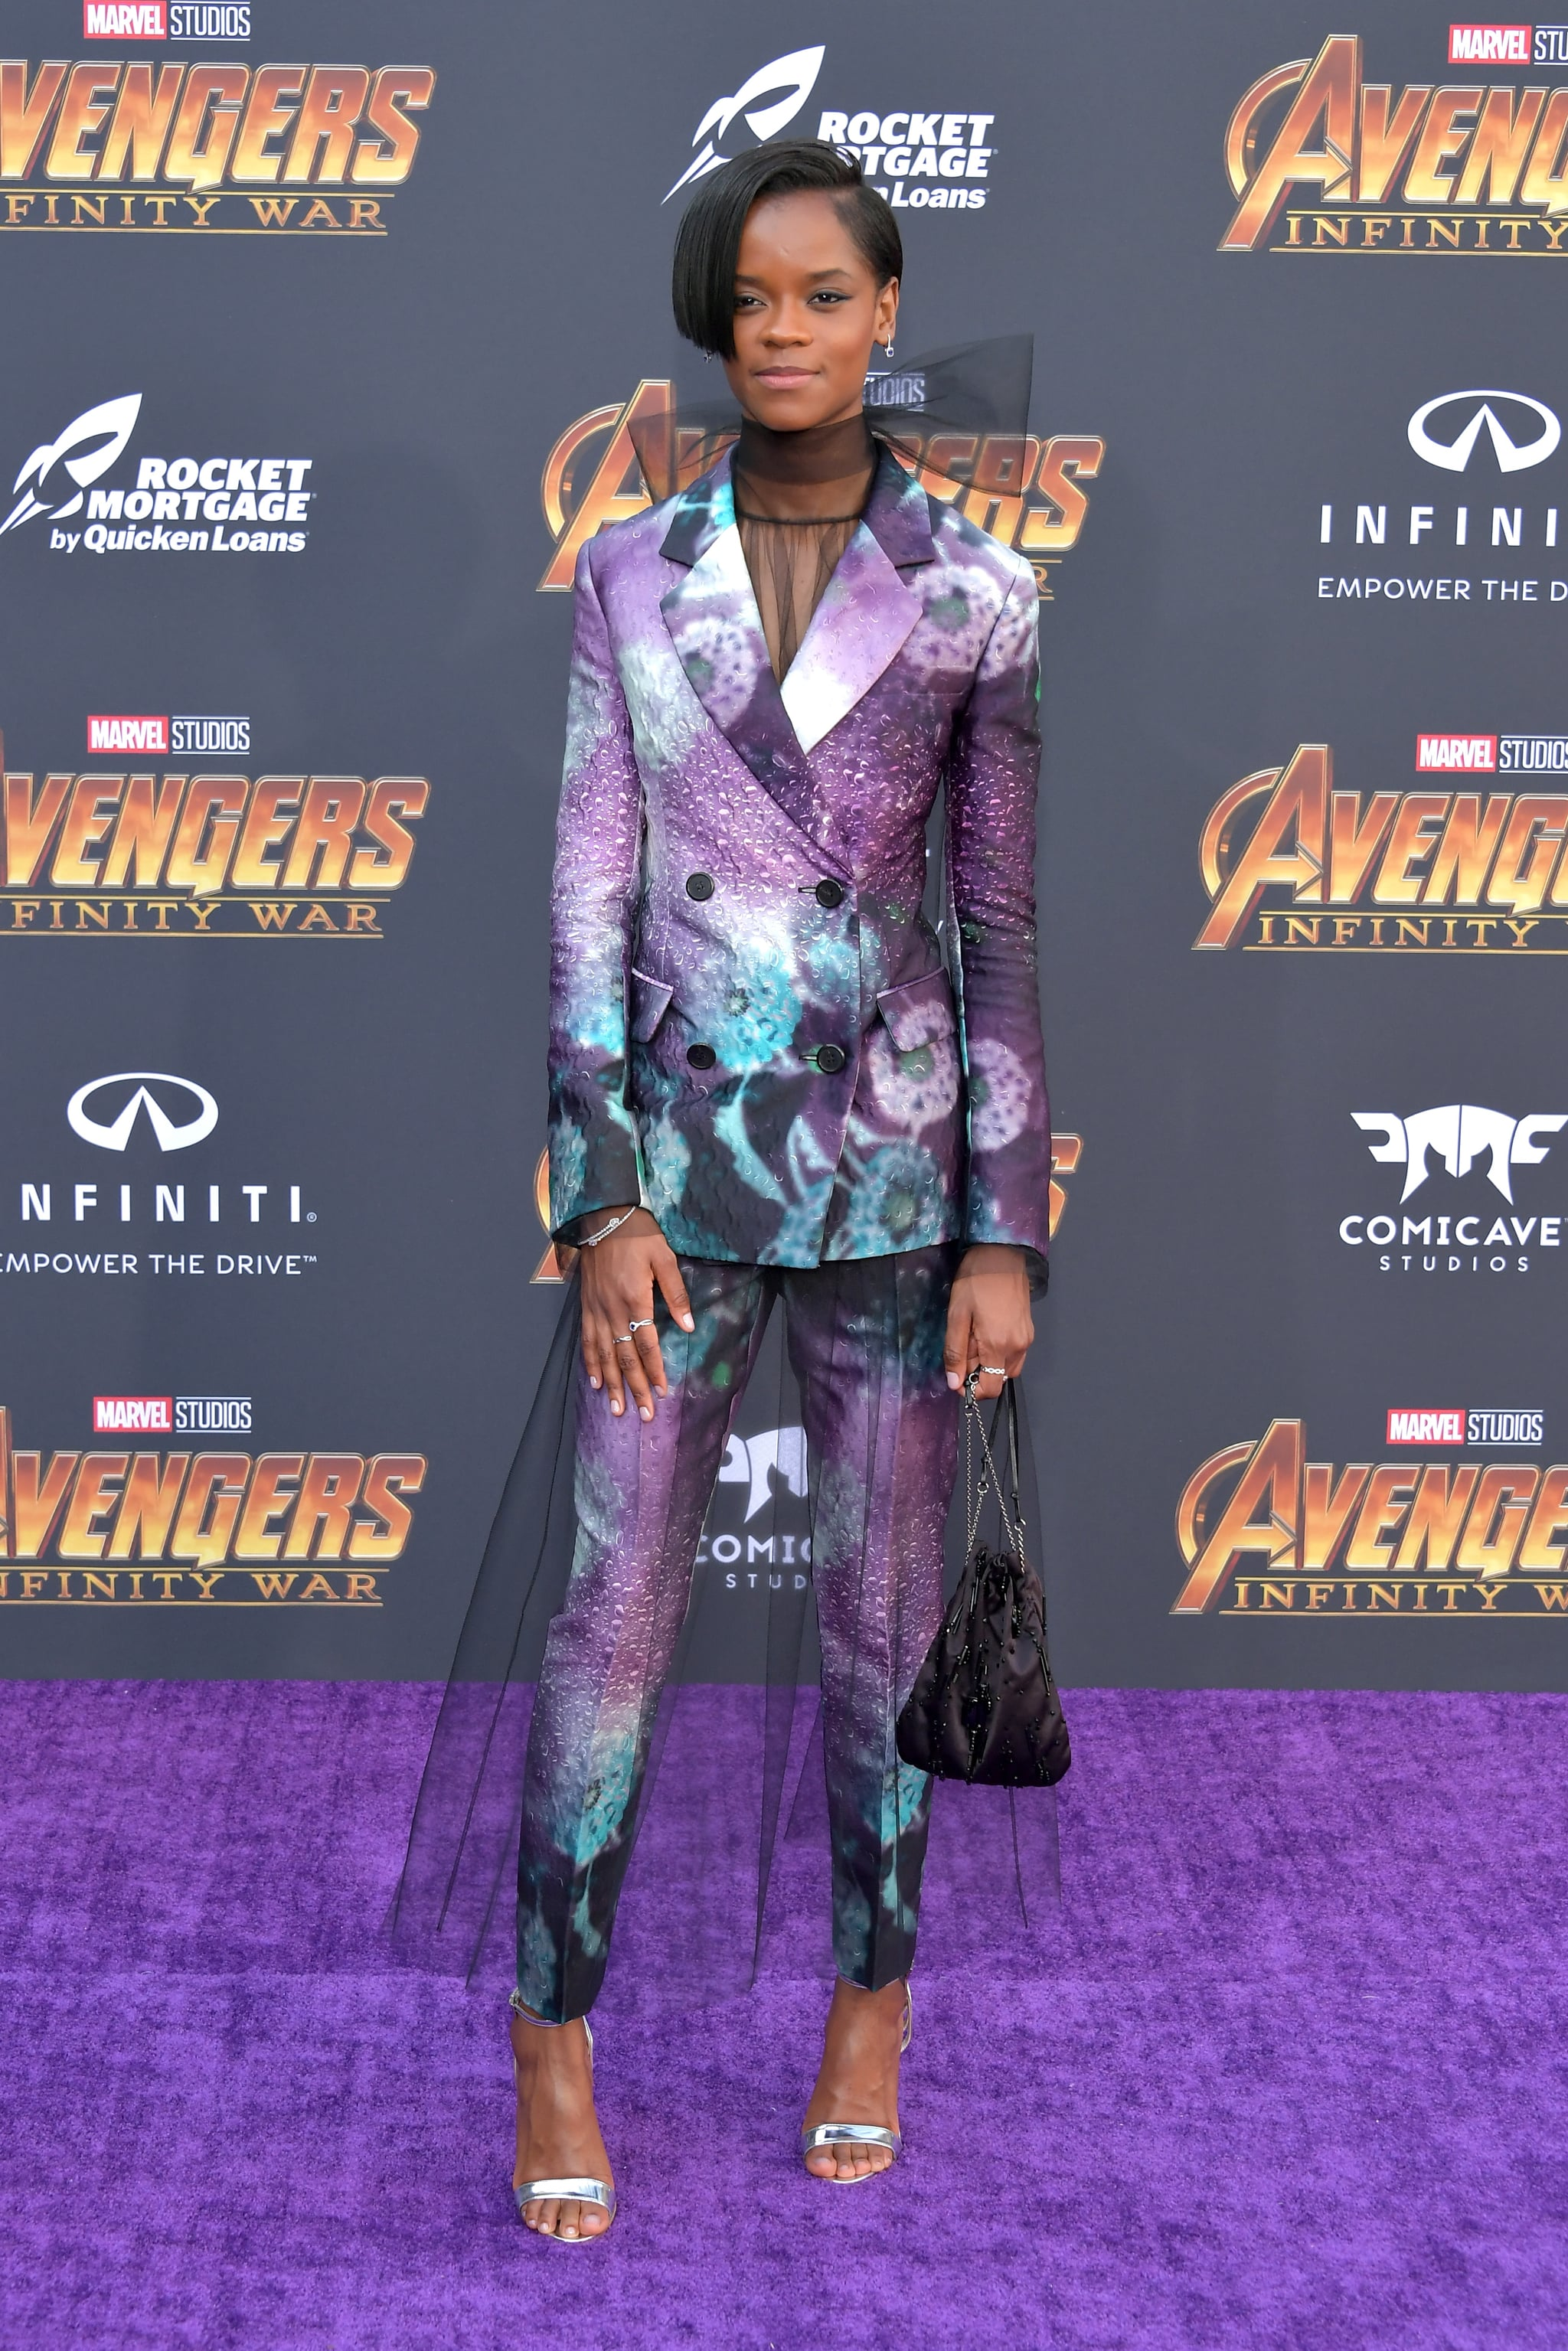 LOS ANGELES, CA - APRIL 23:  Letitia Wright attends the premiere of Disney and Marvel's 'Avengers: Infinity War' on April 23, 2018 in Los Angeles, California.  (Photo by Neilson Barnard/Getty Images)